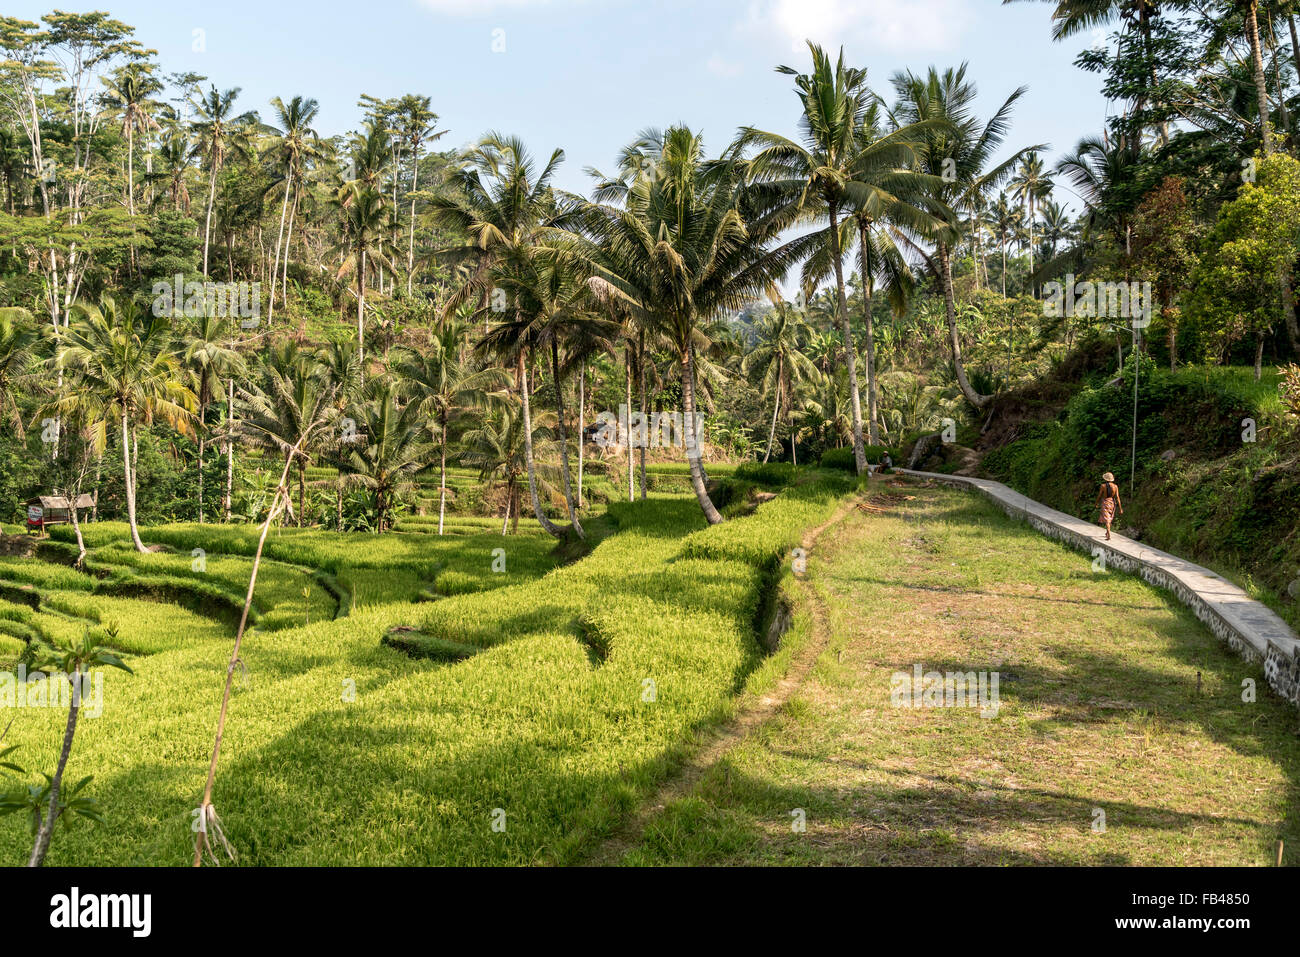 Rice Terraces at Gunung Kawi Temple, Tampaksiring near Ubud, Bali, Indonesia - Stock Image